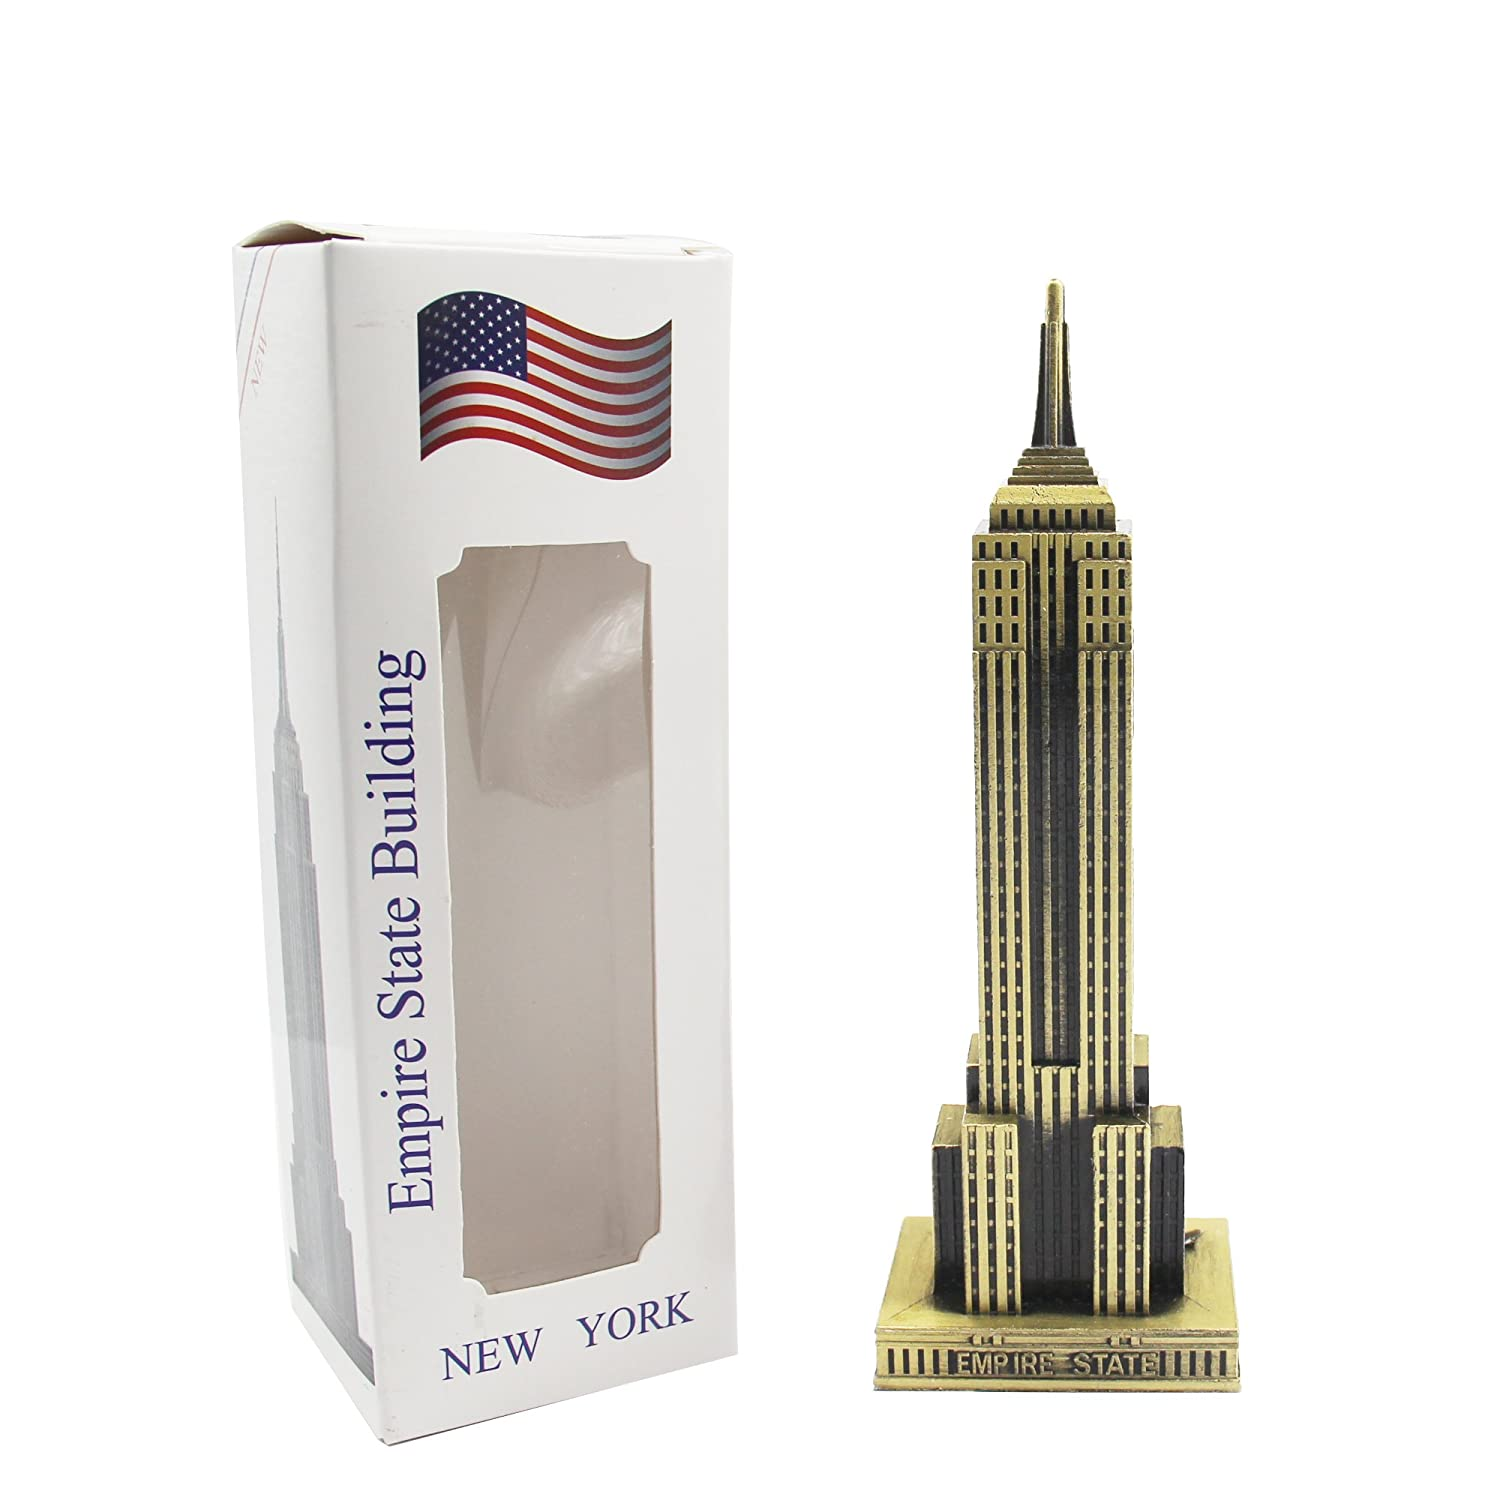 H&W 9Inch New York Statue of Empire State Building Replica Model Statue Figurine(HH2-D1)